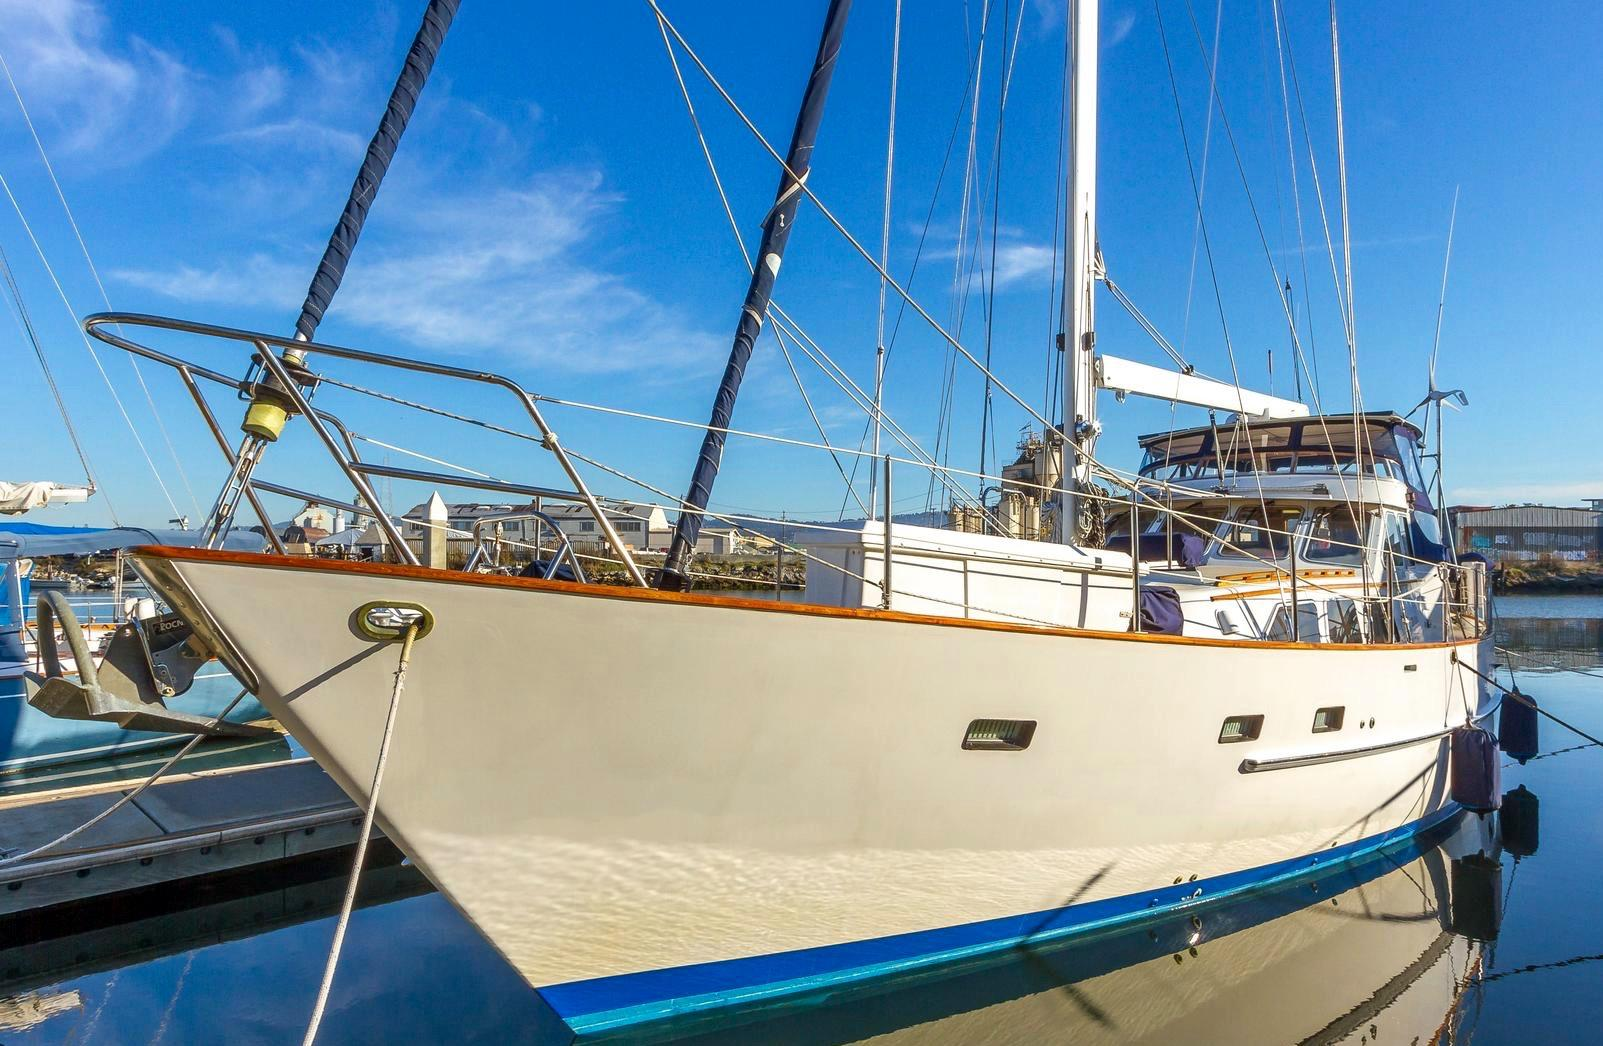 53 Cheoy Lee Motor Sailer Yacht For Sale Rubicon Yachts